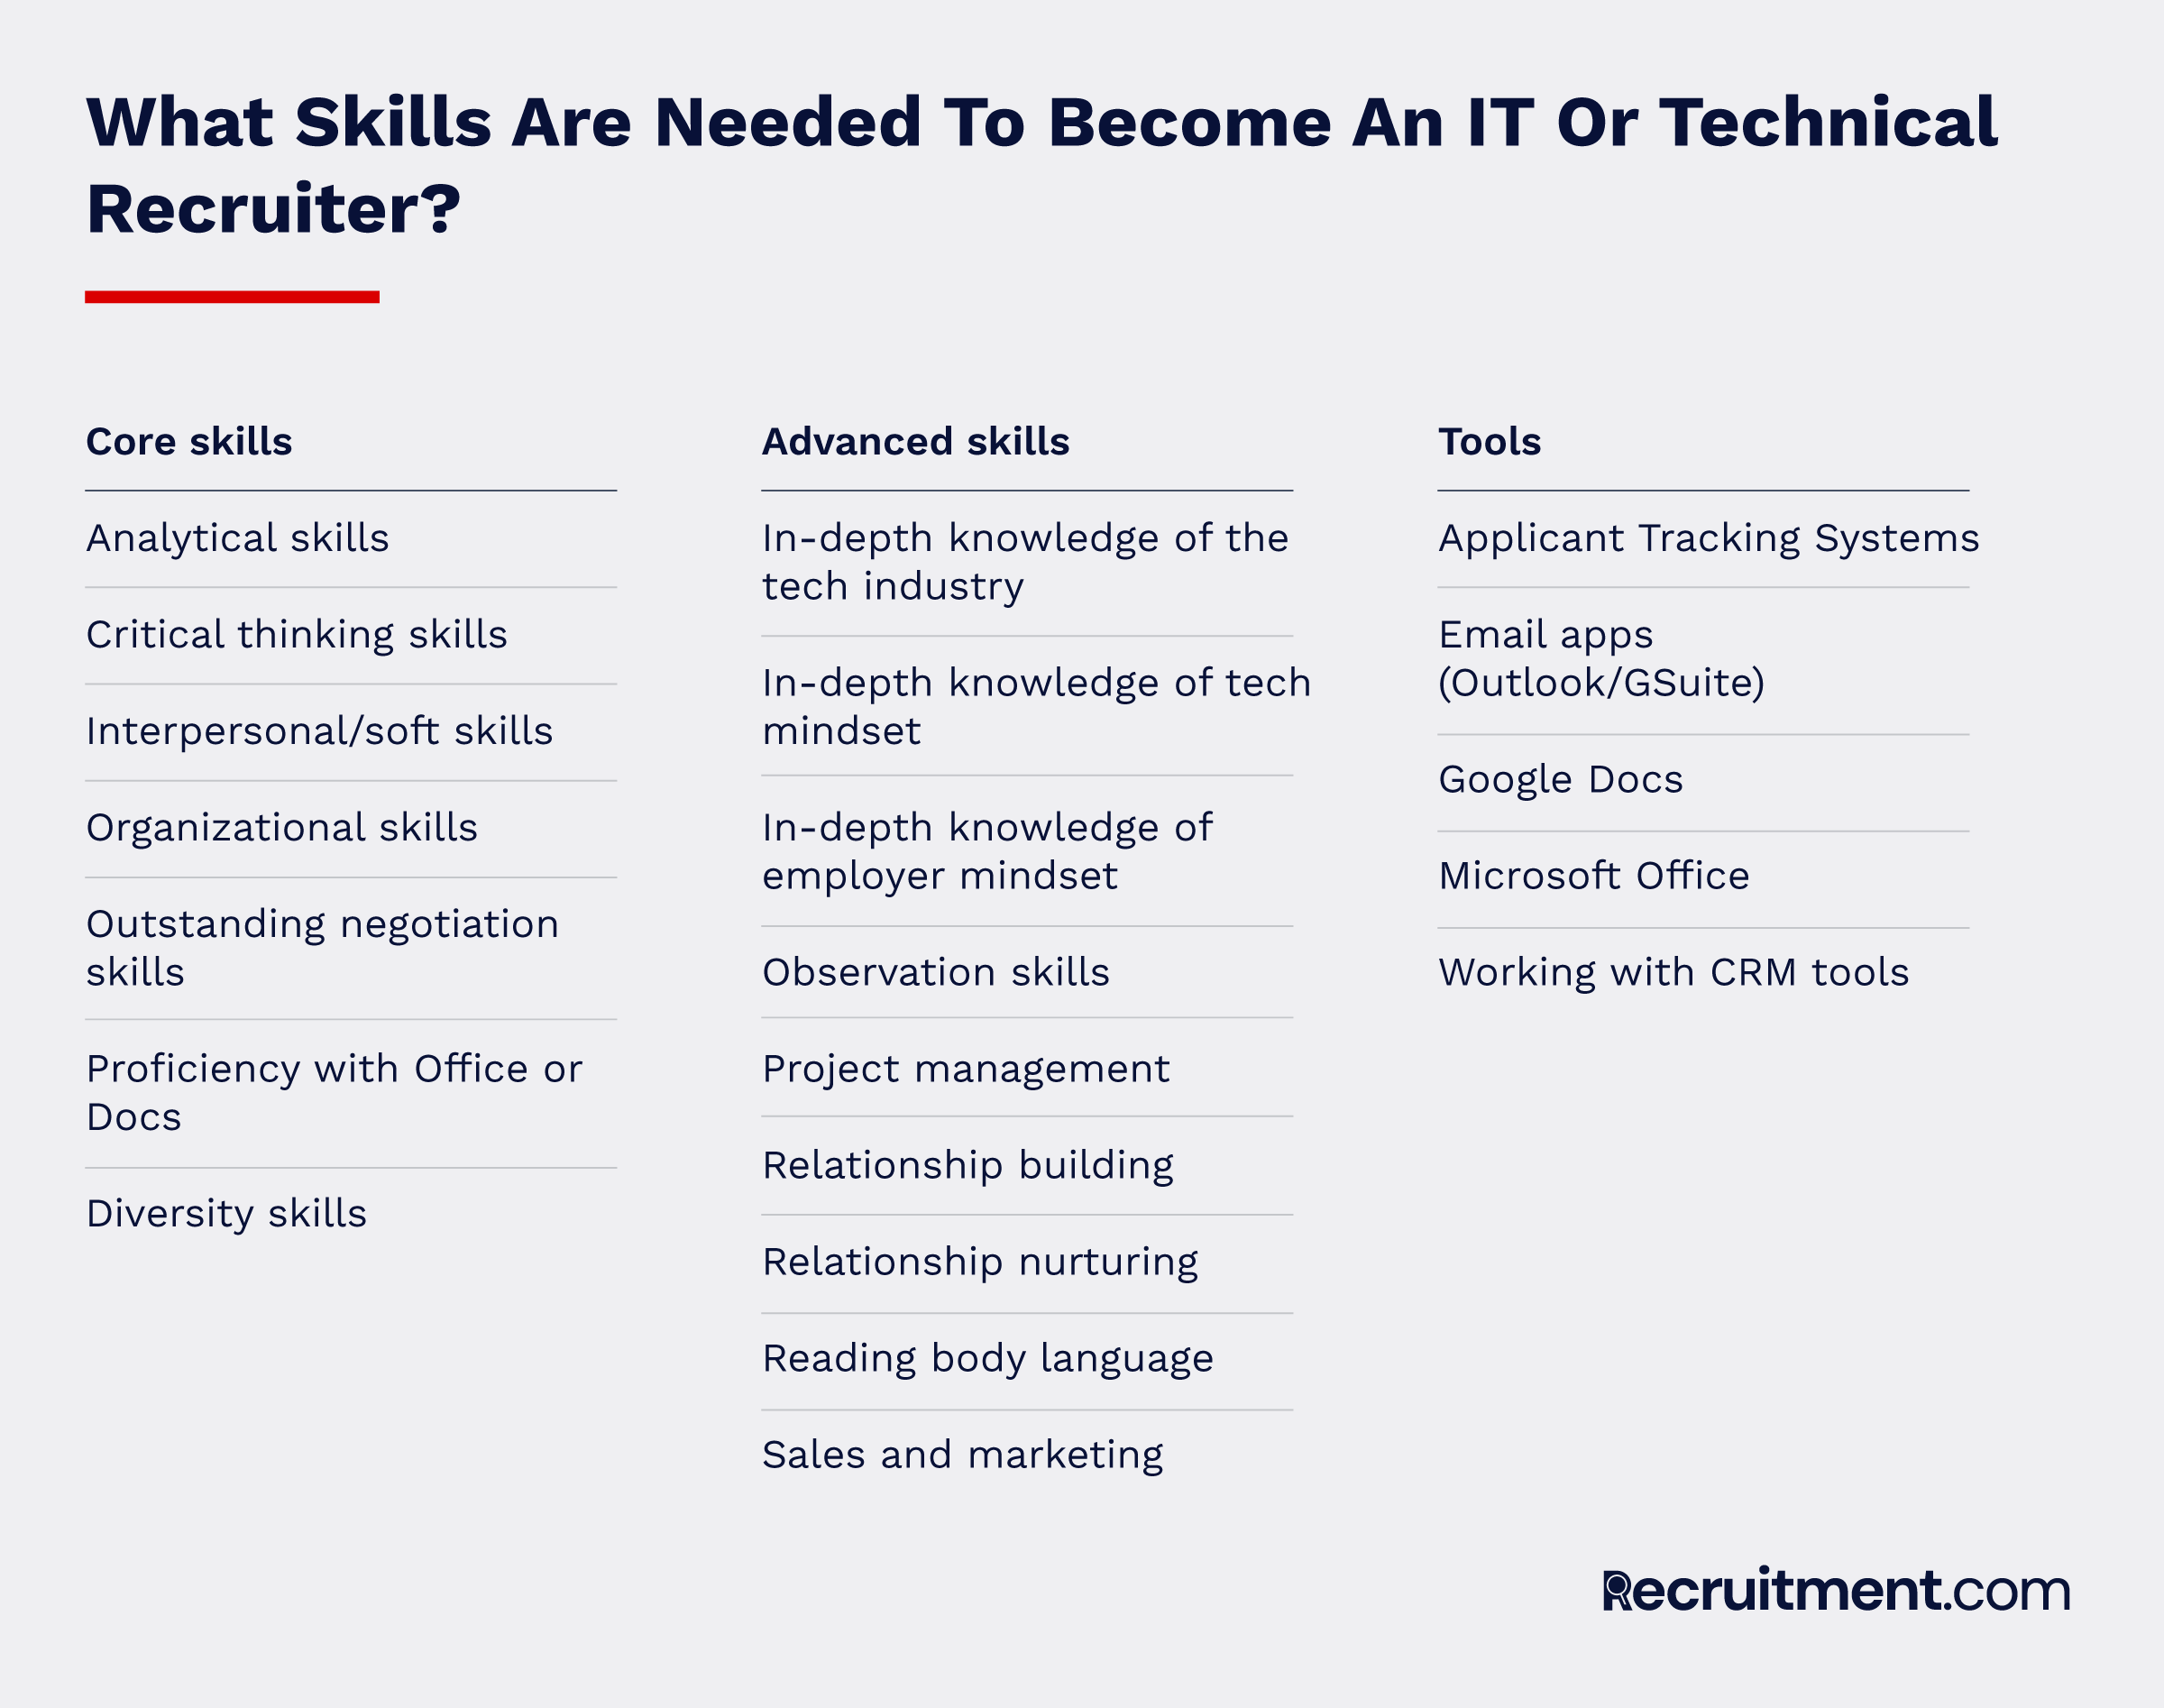 Skills needed to become an IT technical recruiter